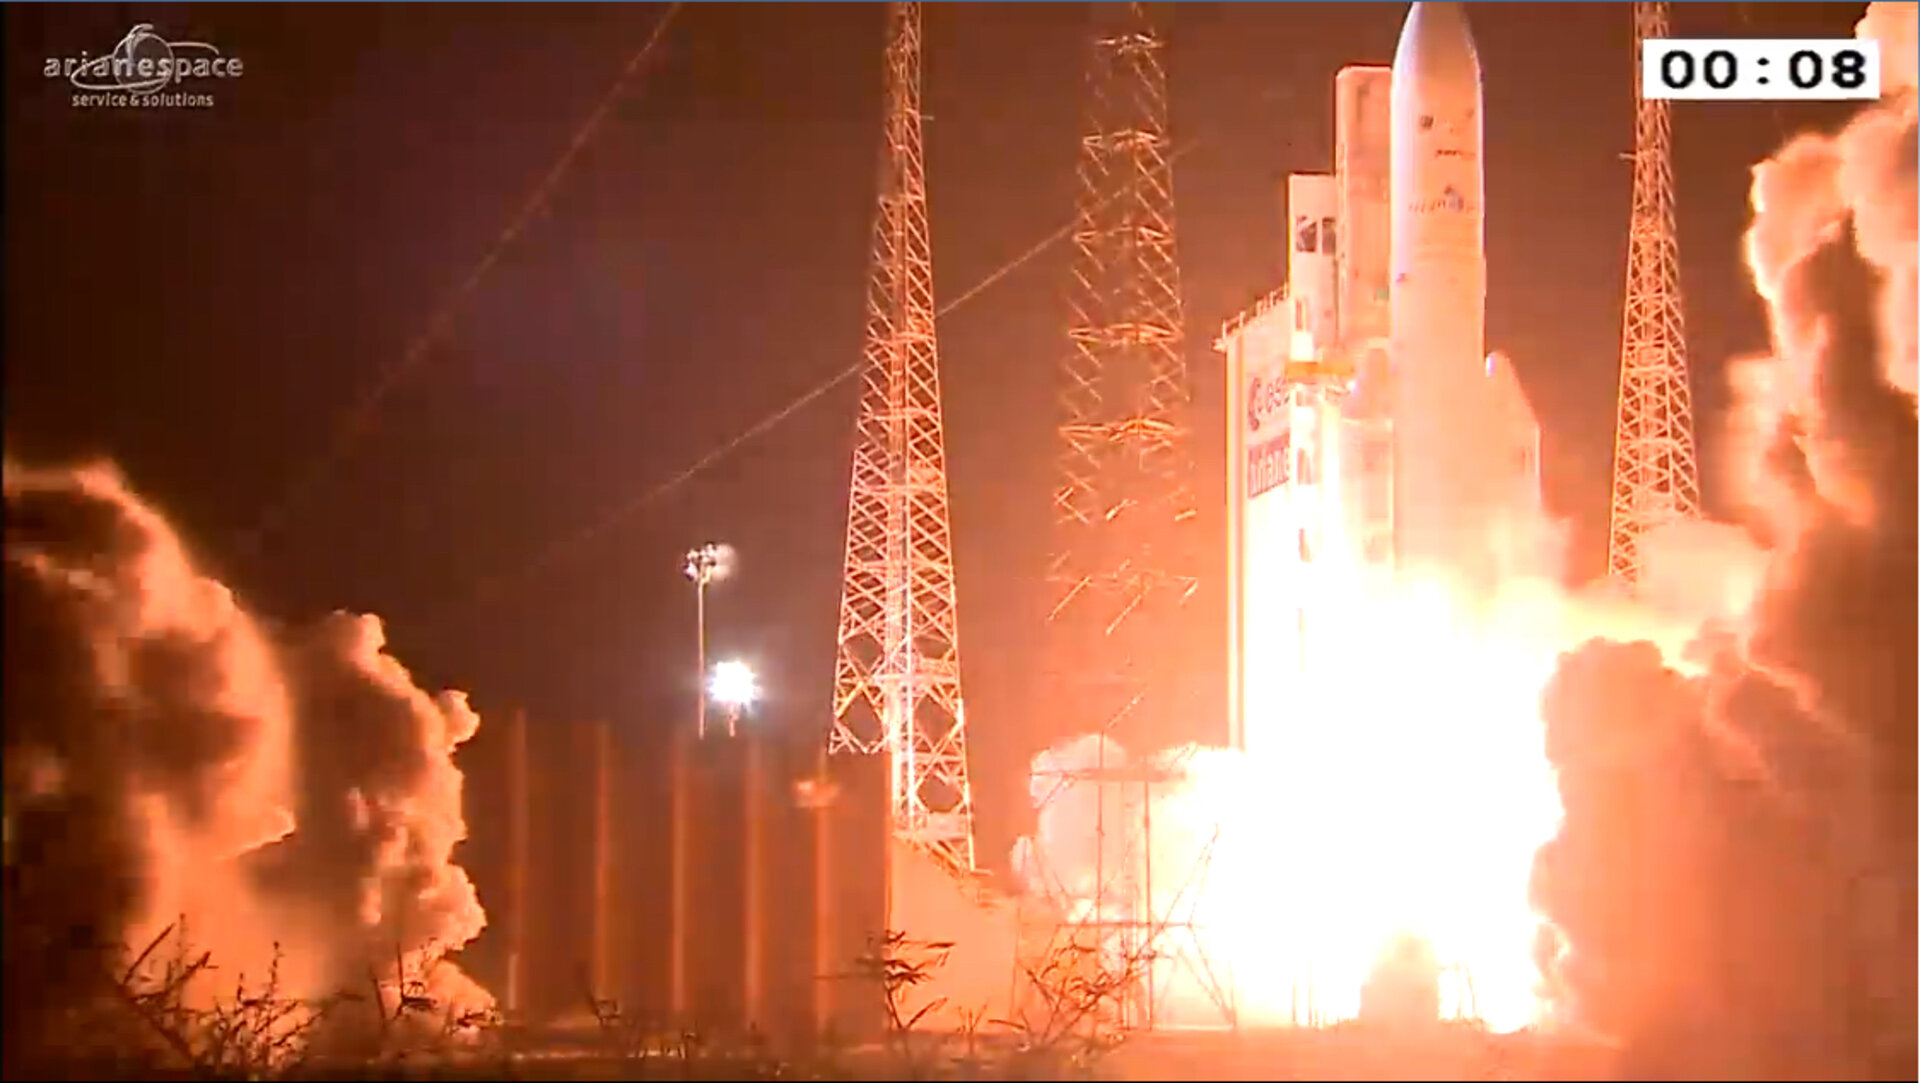 Ariane 5 liftoff on VA228